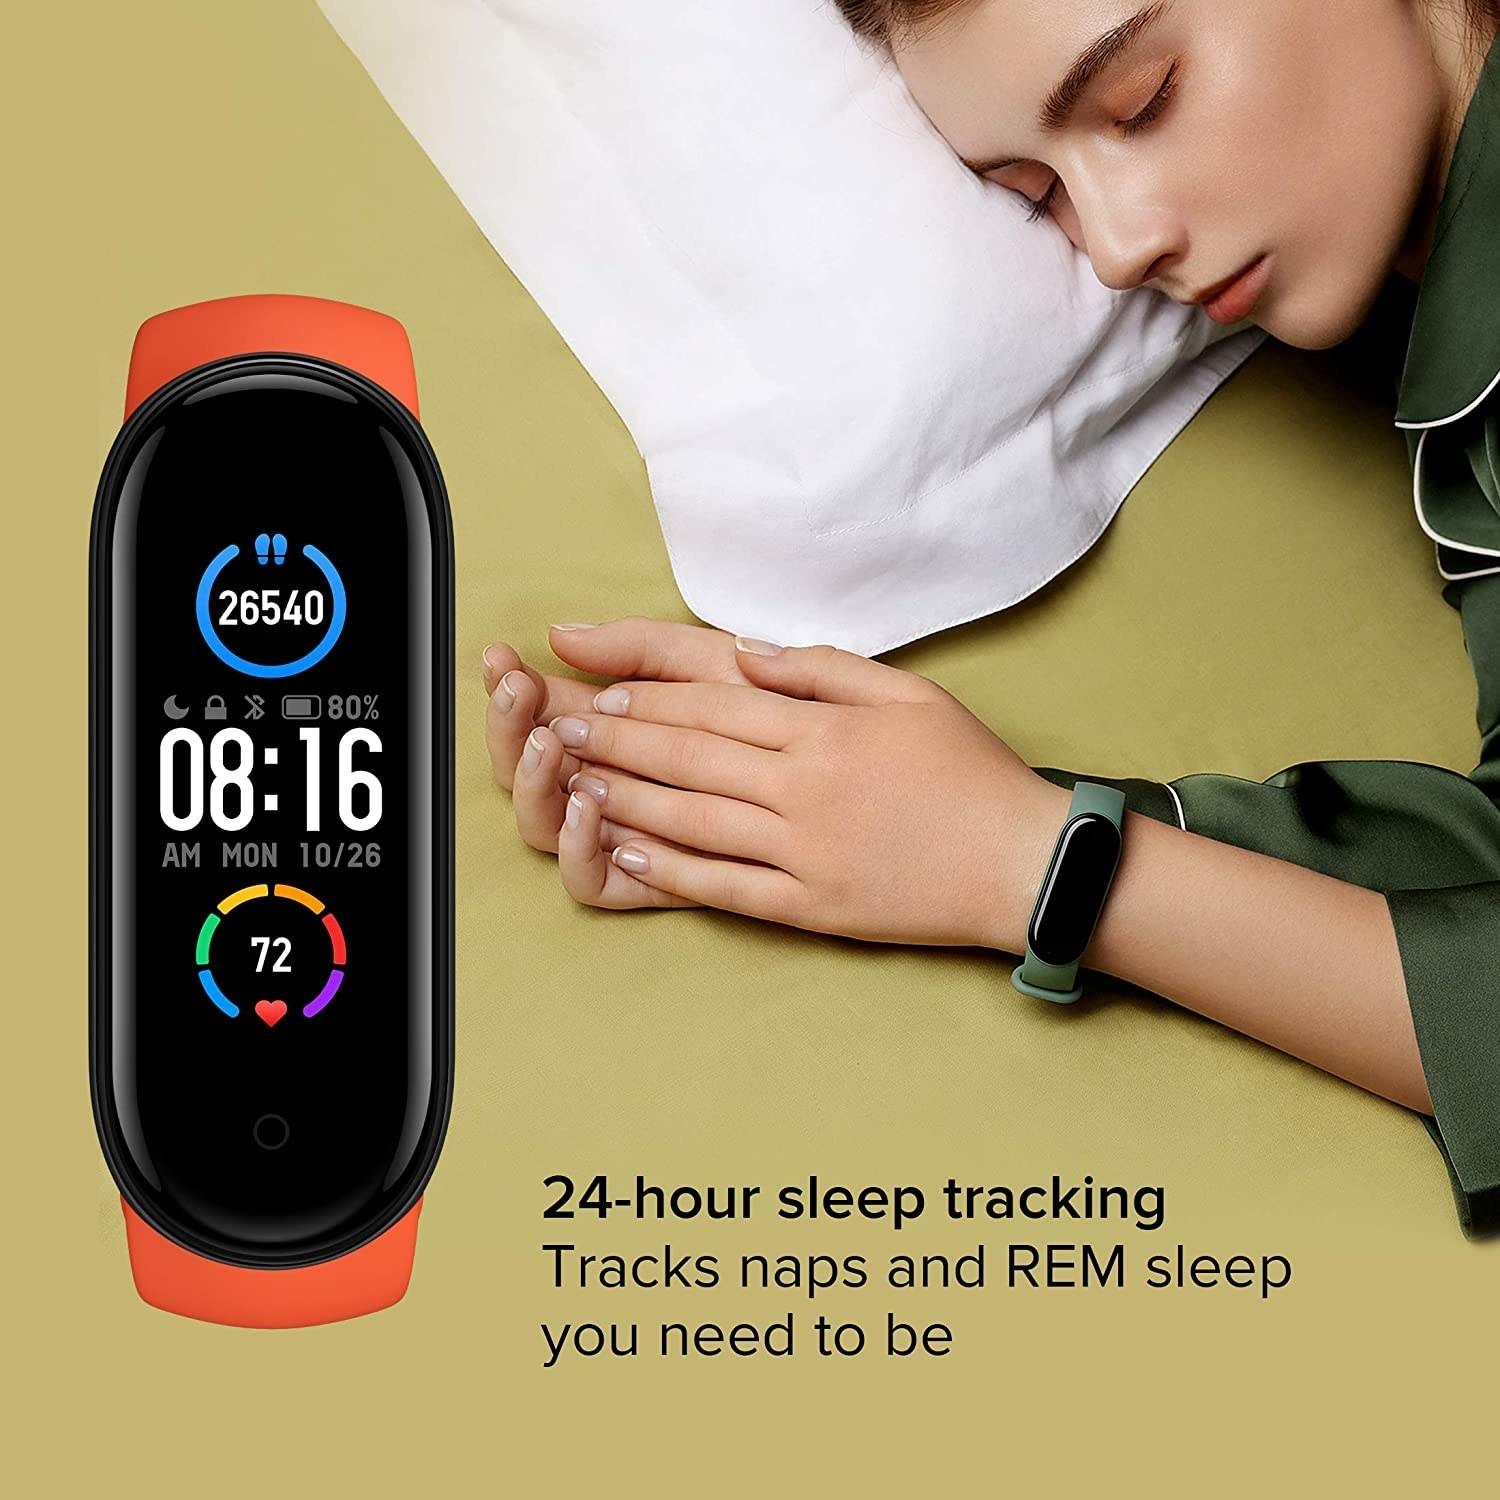 A woman sleeping with the fitness band on